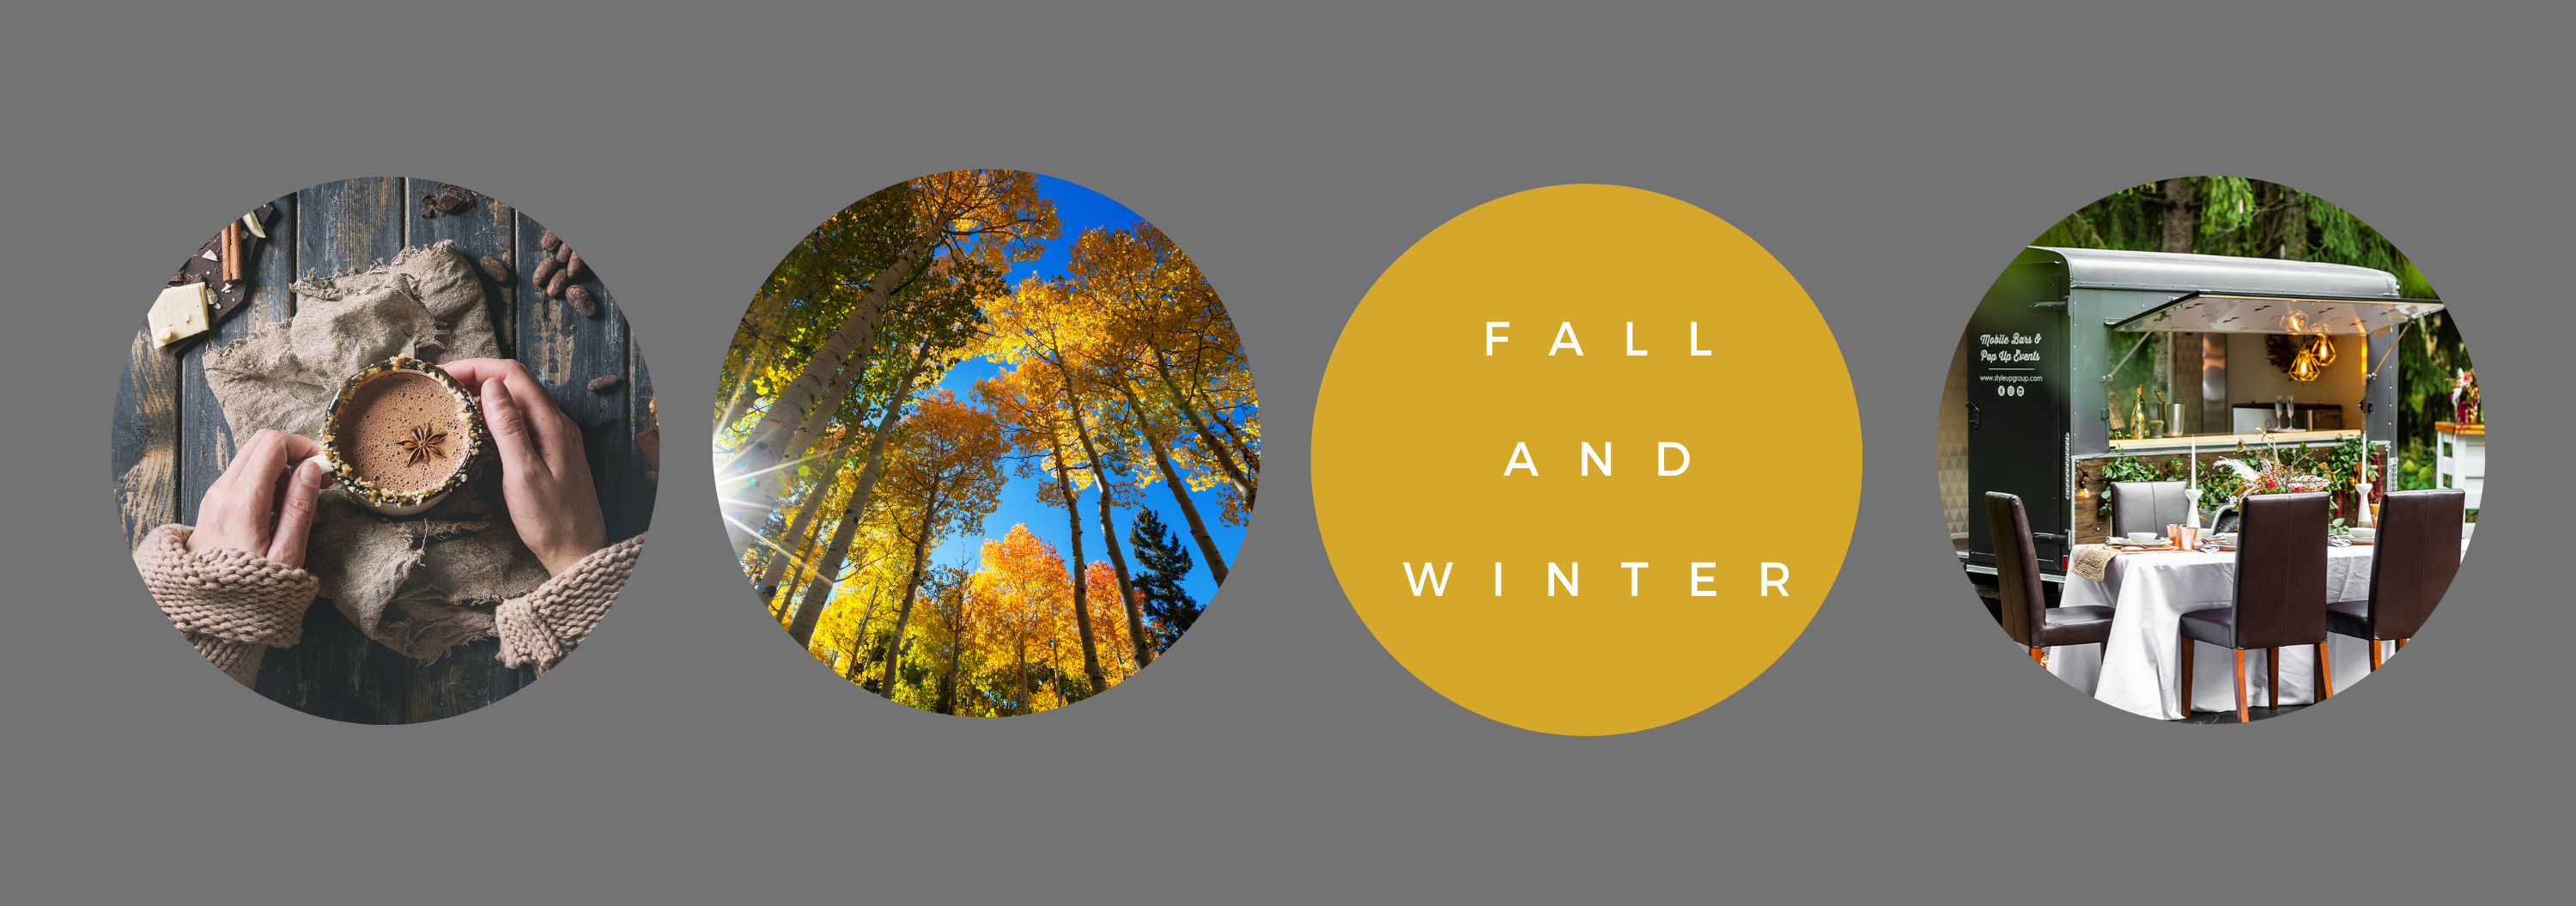 Fall and Winter Pop Ups